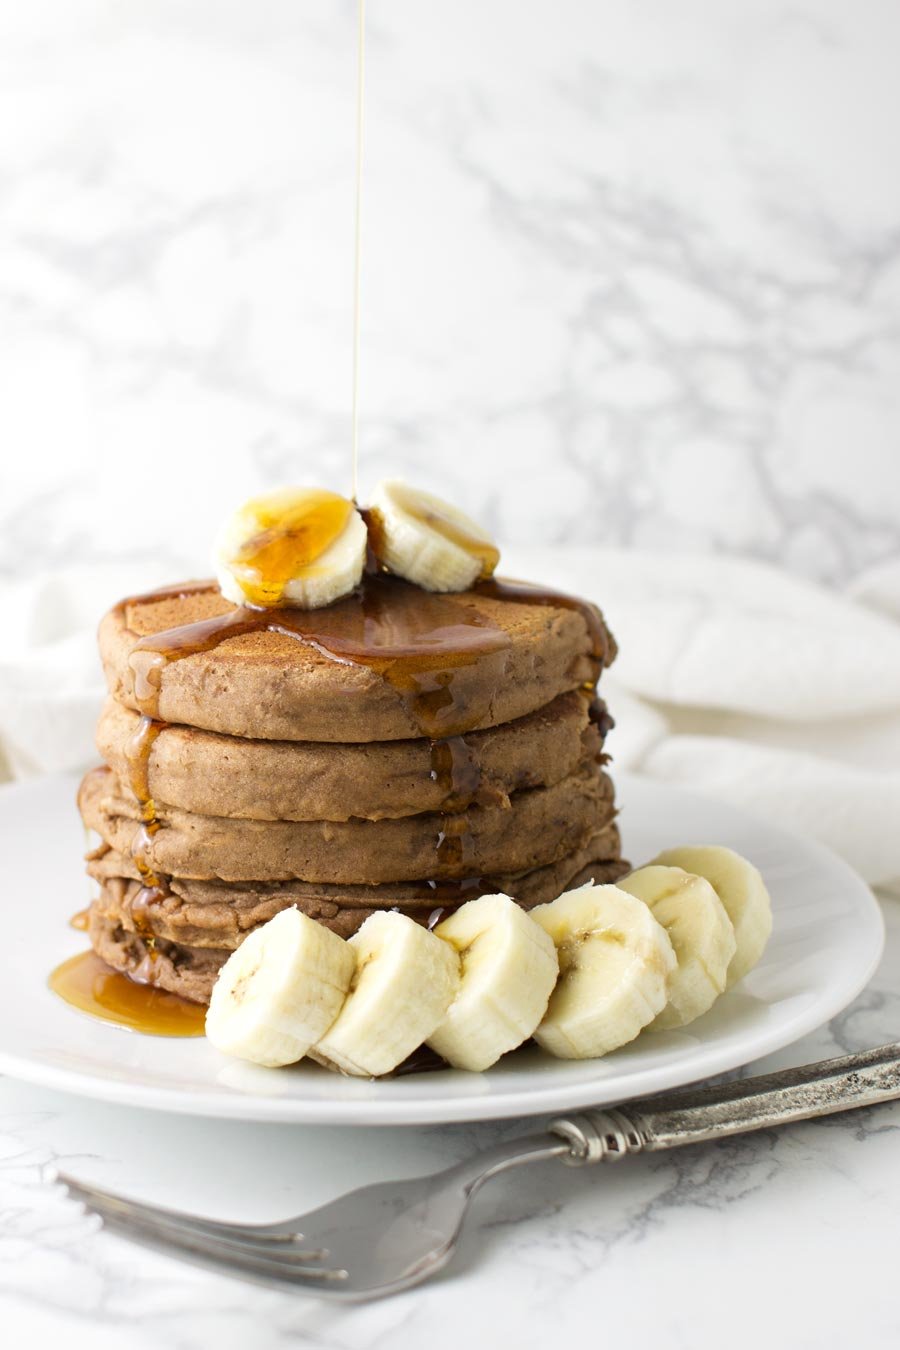 Cocoa Banana Pancakes recipe from acleanplate.com #breakfast #healthy #paleo